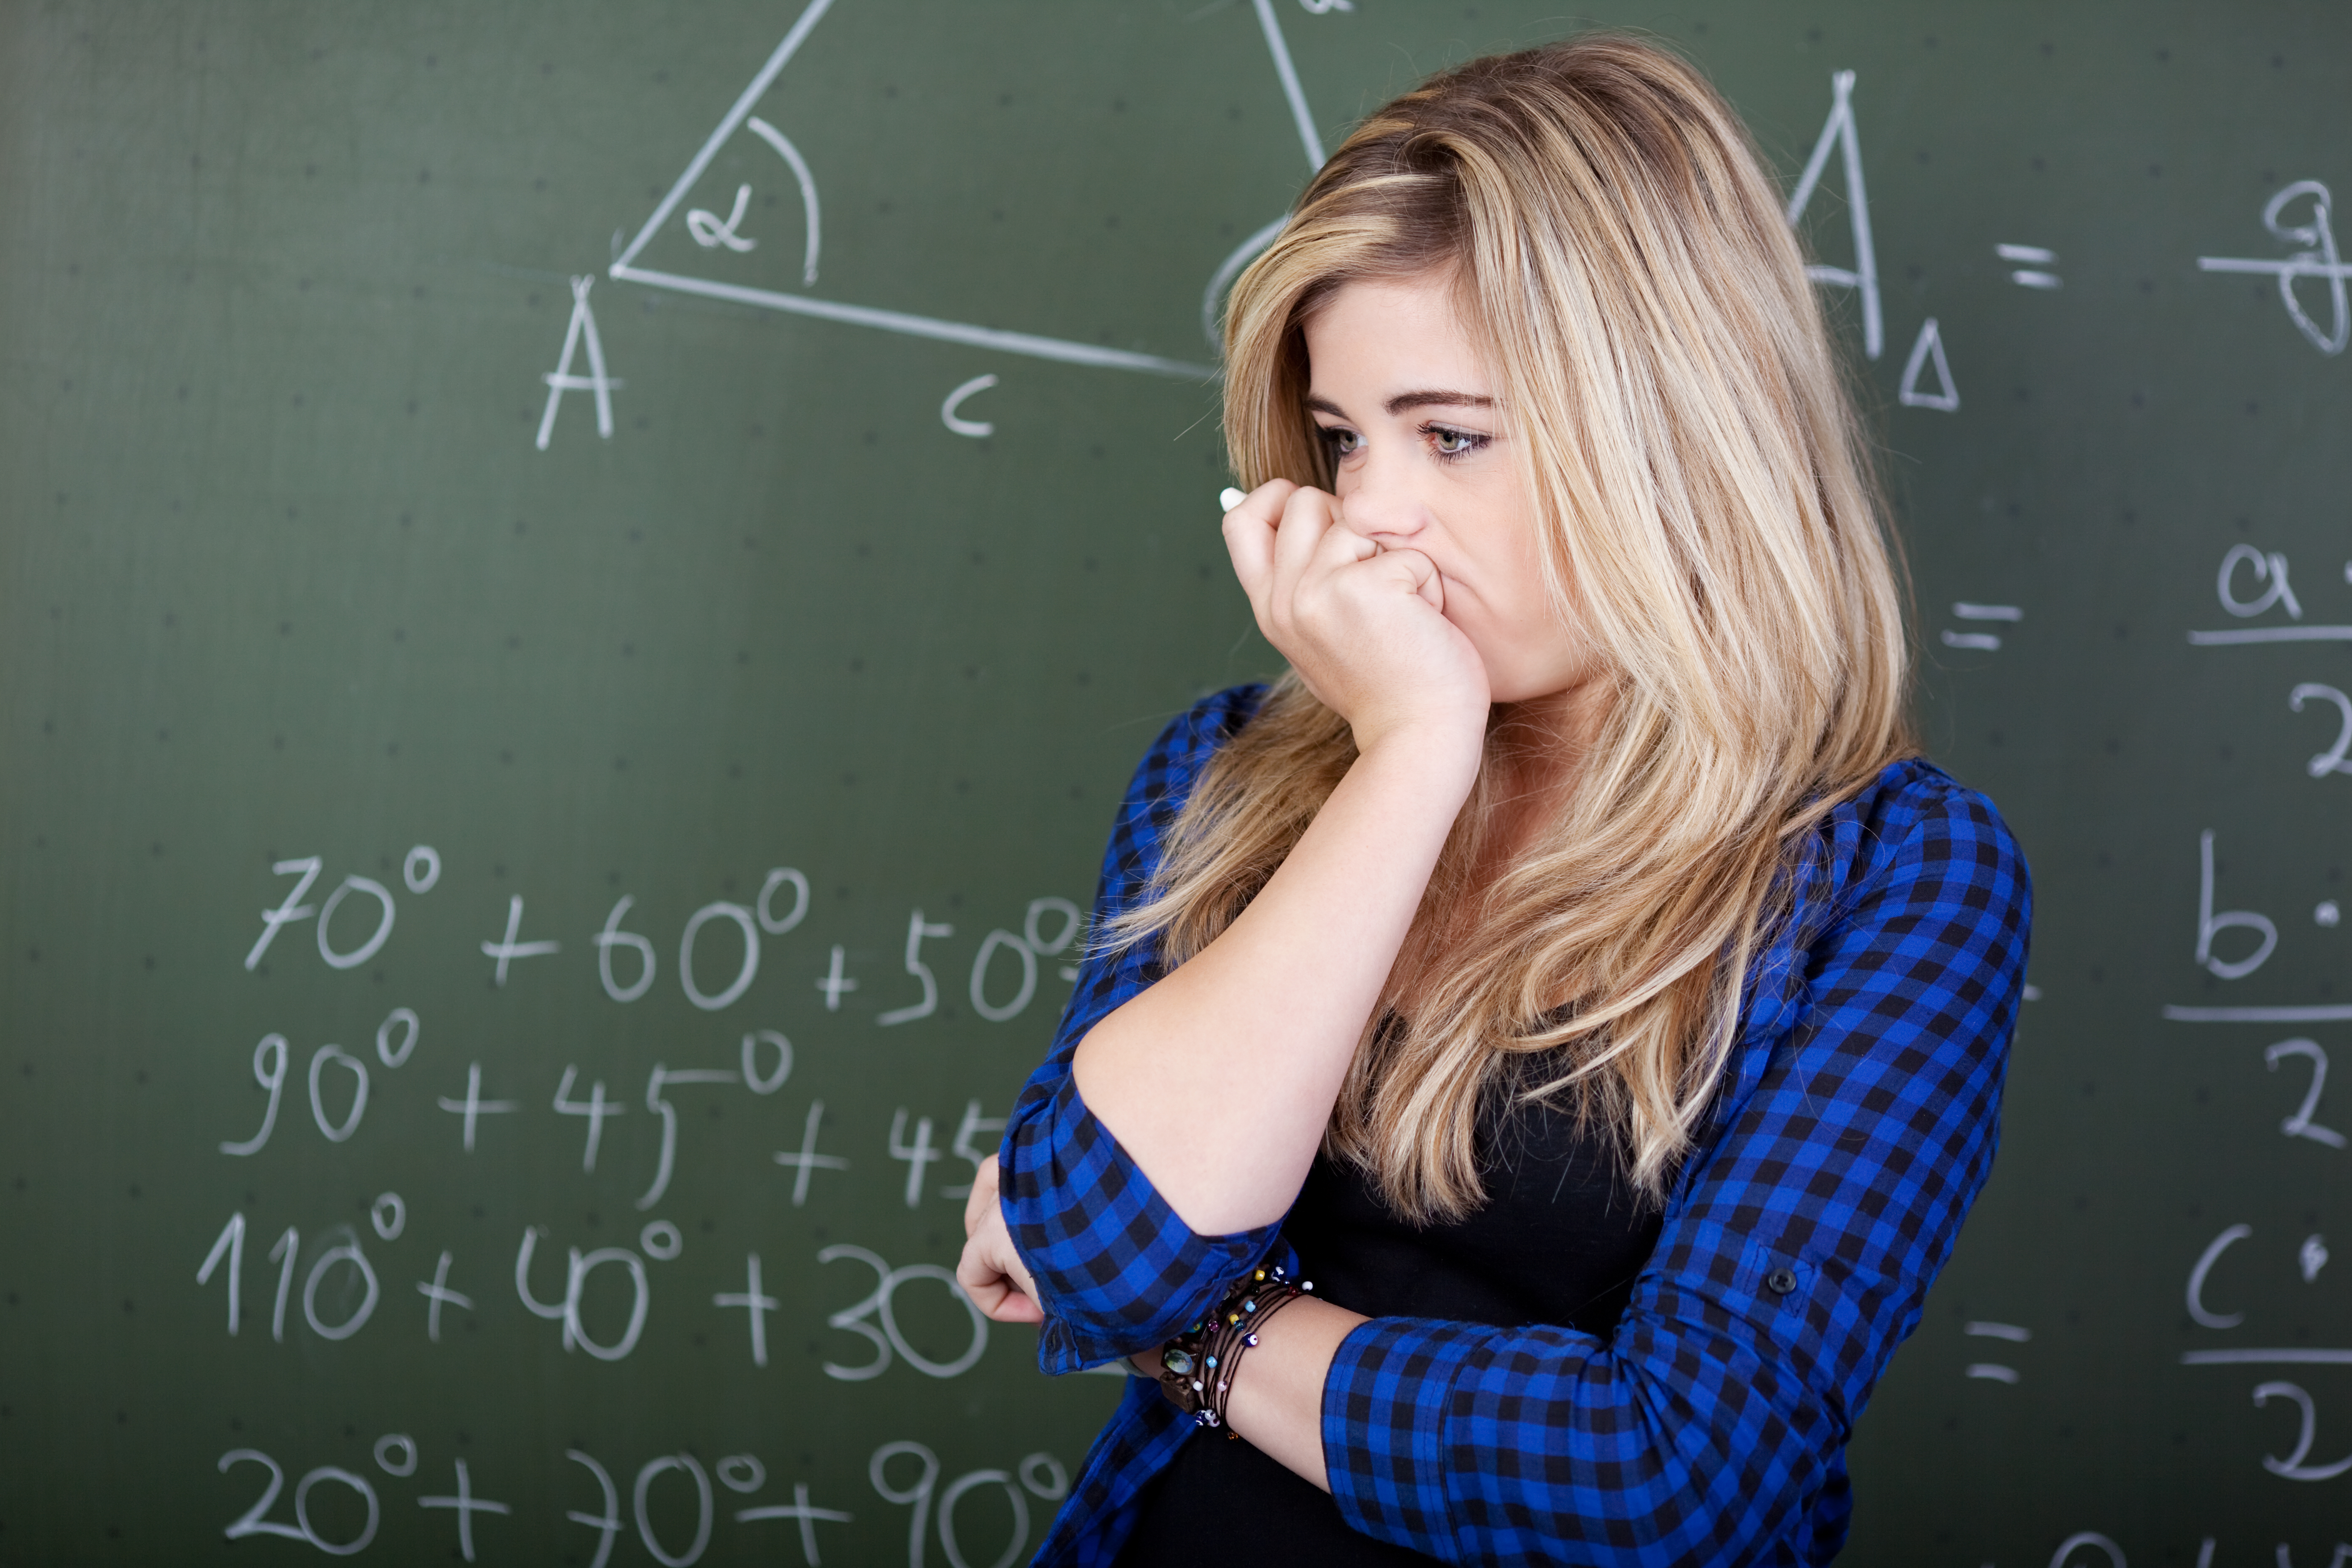 Female student deep thoughts standing at blackboard